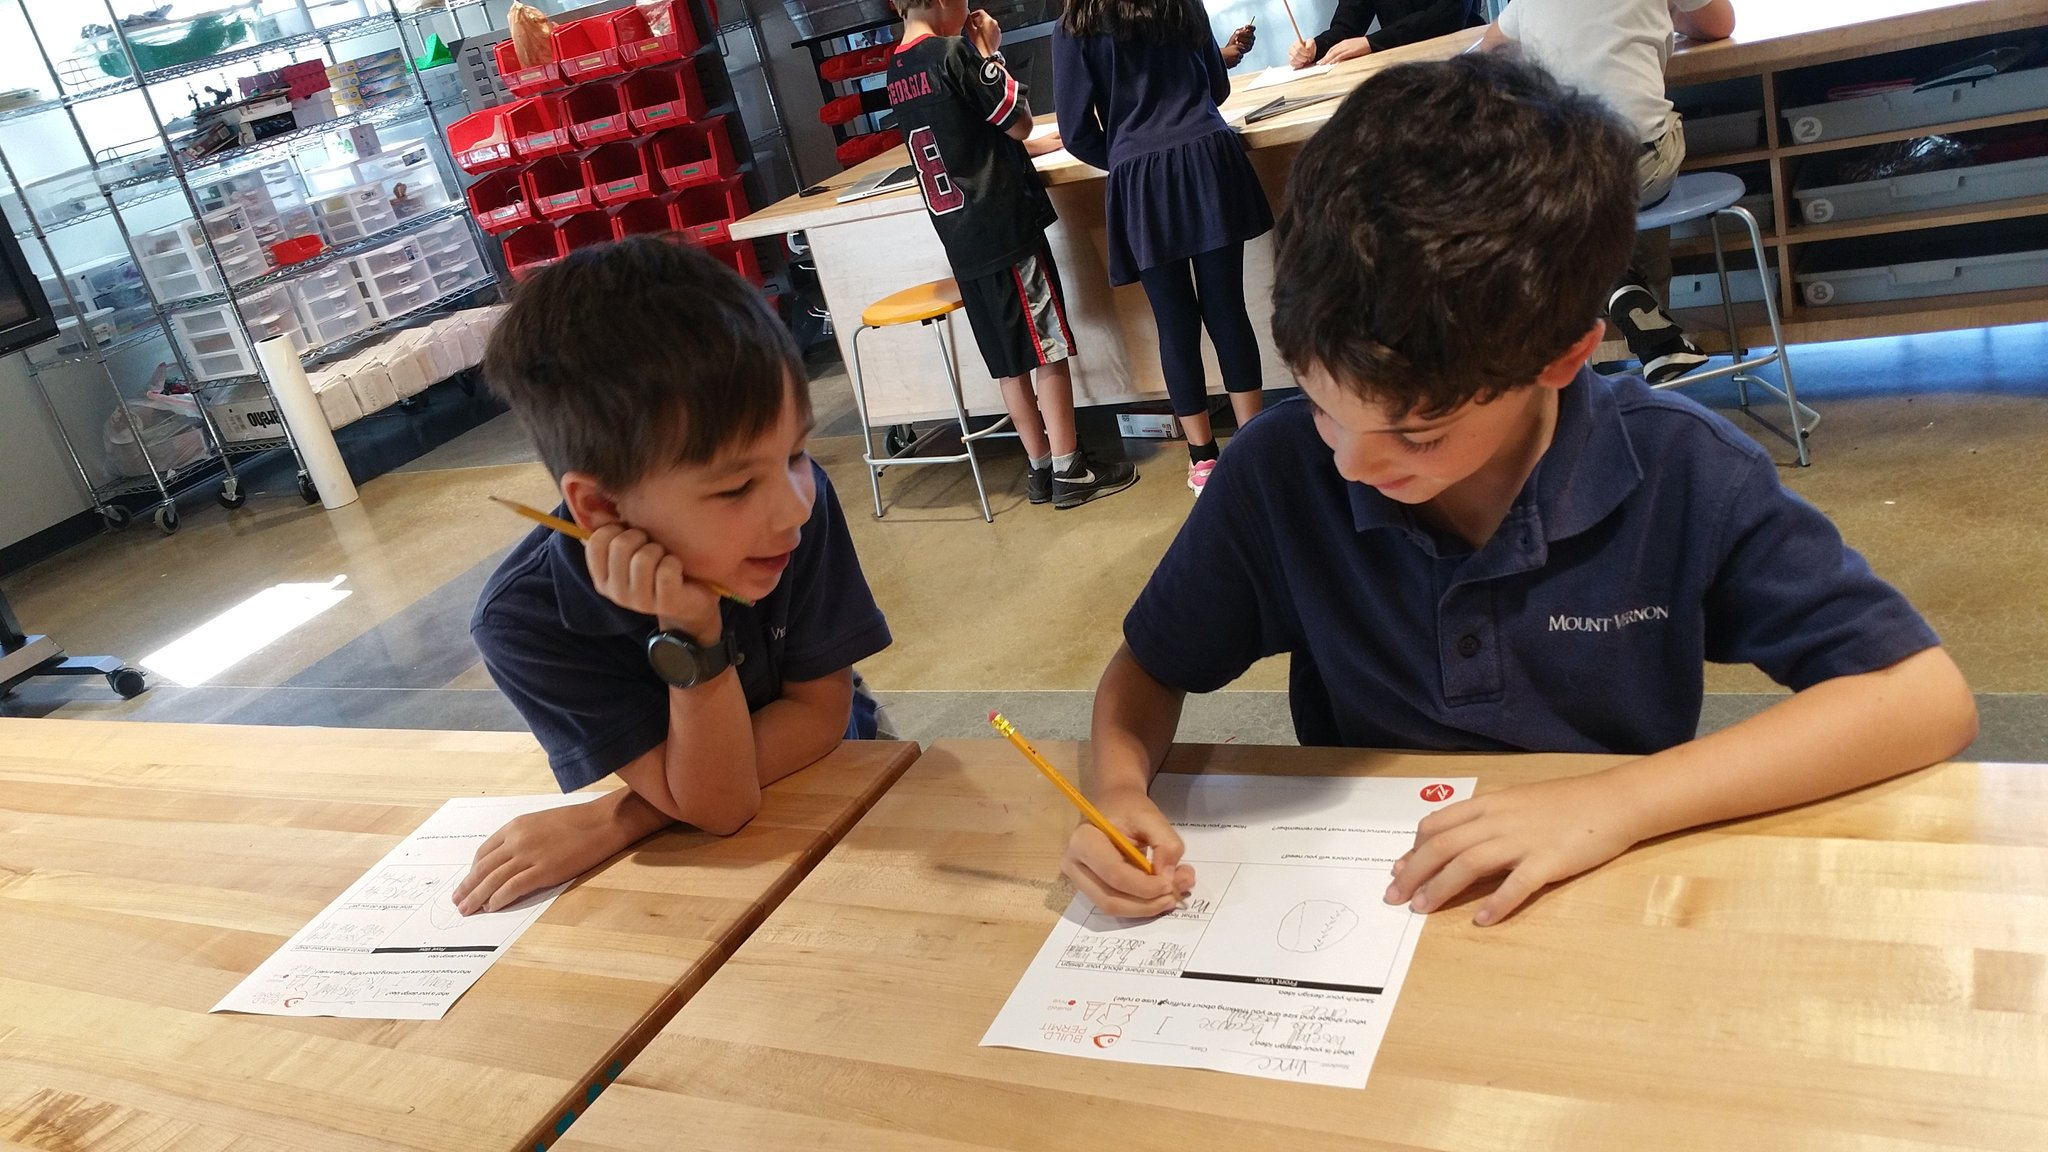 """What feedback do you have for me?"" #kidquote Ideas captured on build permits by Gr2 improve thanks to peer interactions #MakerEd #MVPSchool https://t.co/WOvay2bmmV"